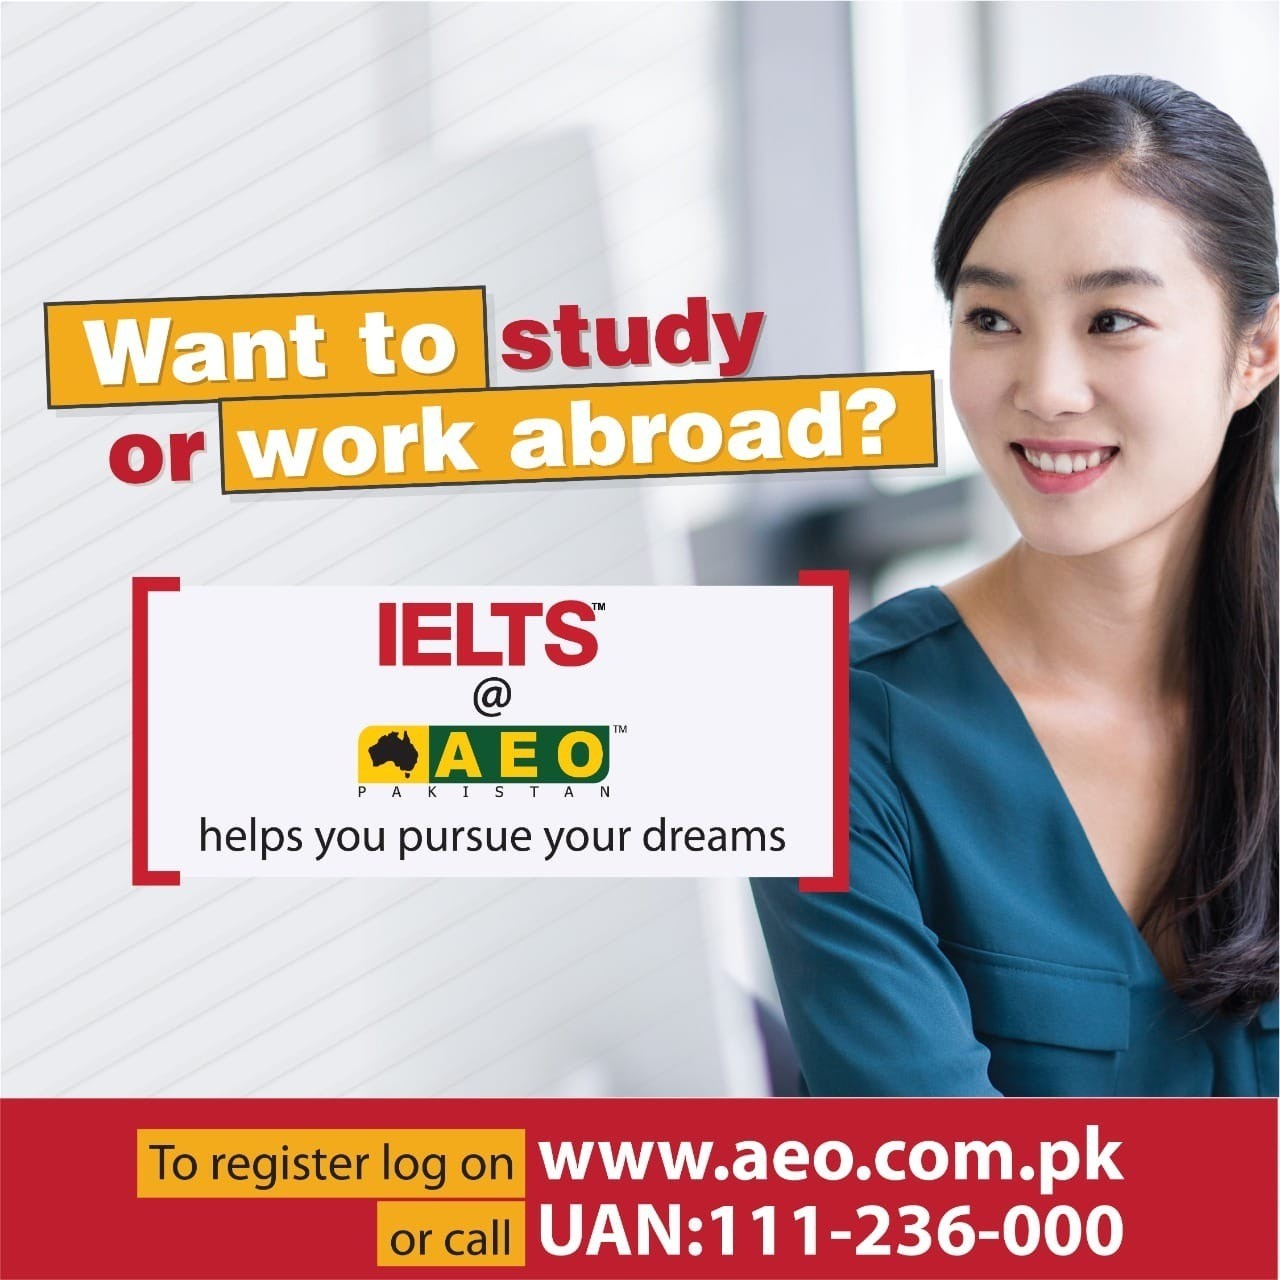 Want to study or work abroad? IELTS at AEO Pakistan helps you pursue your dreams.